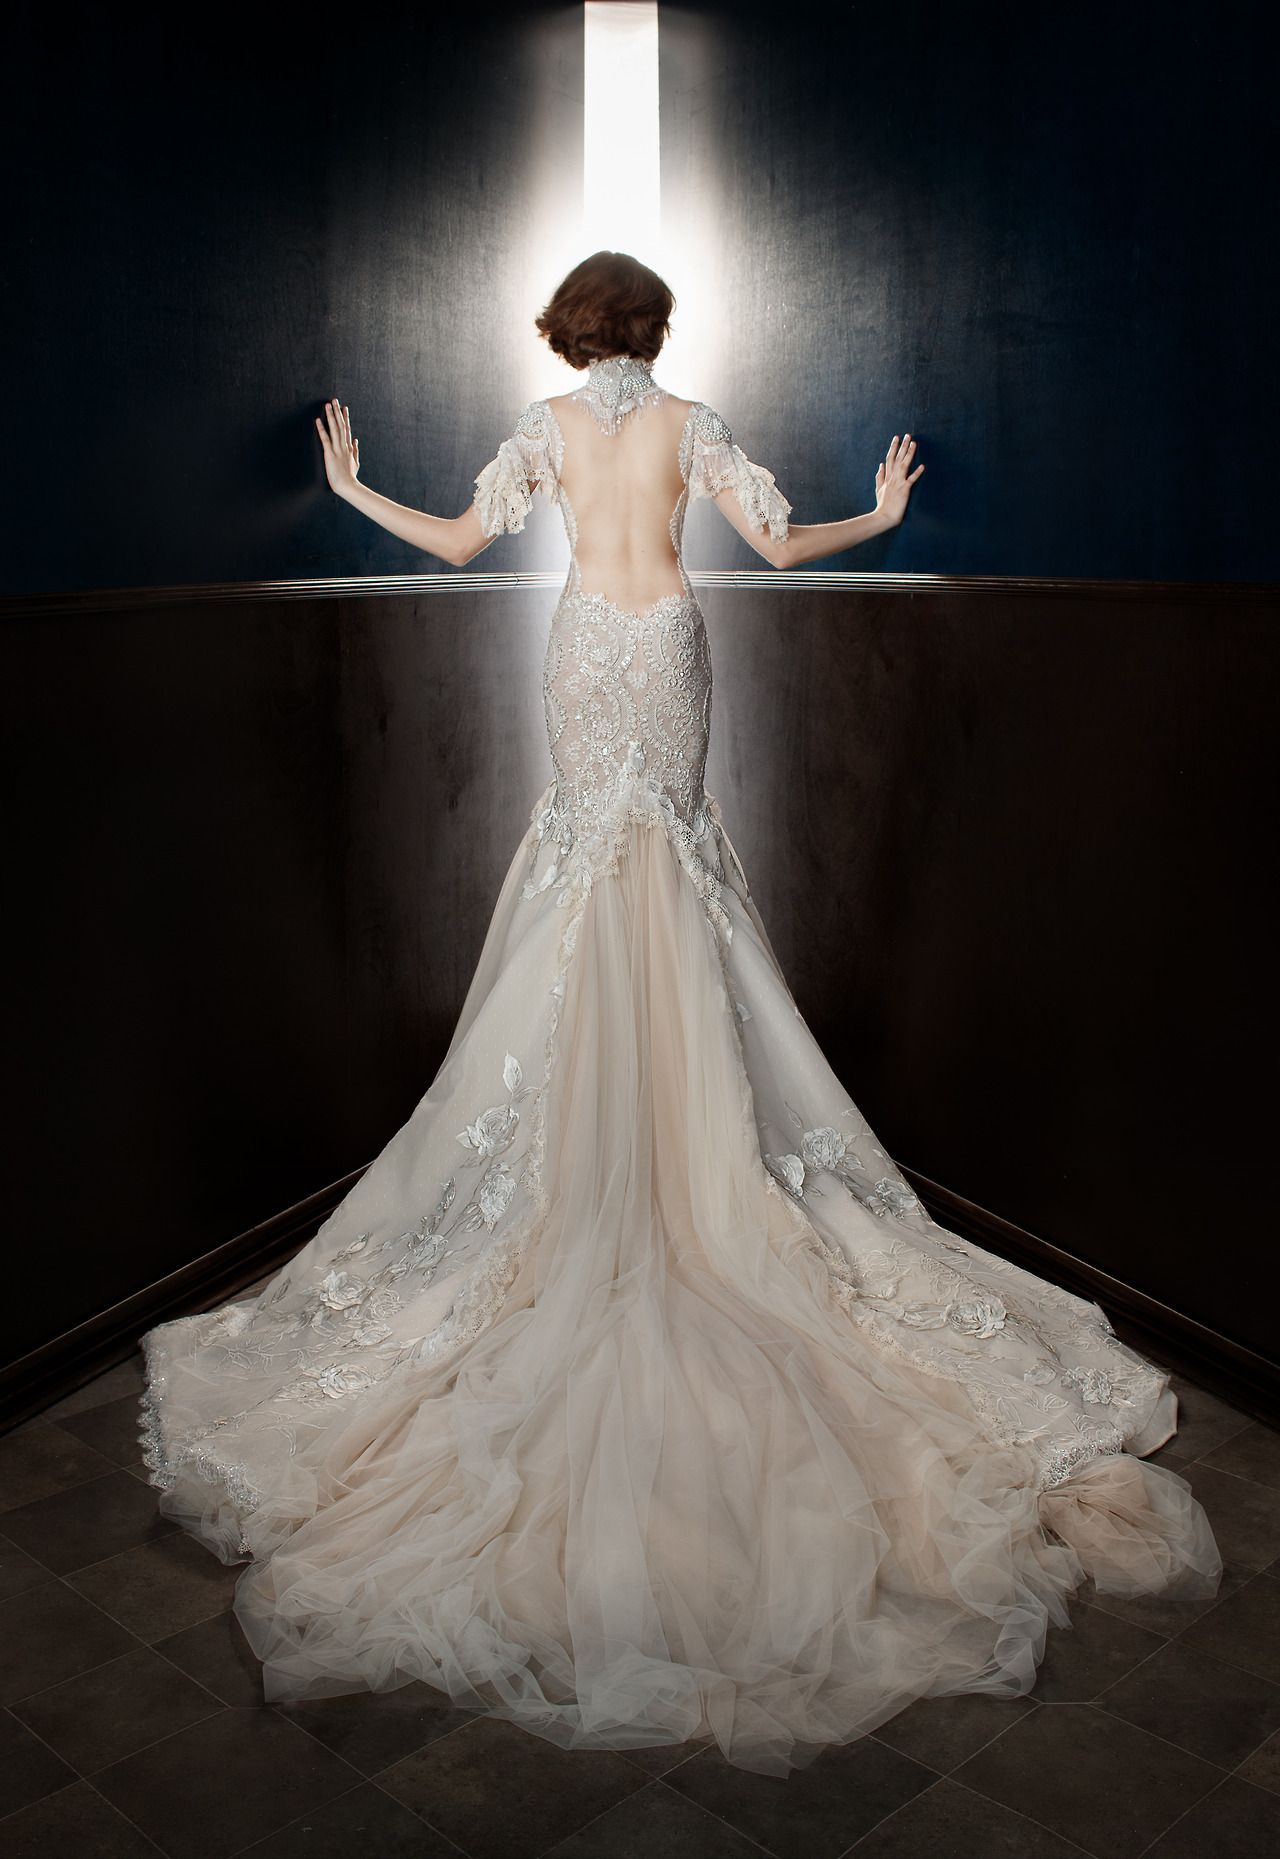 Eclectdissect galia lahav spring summer bridal collection